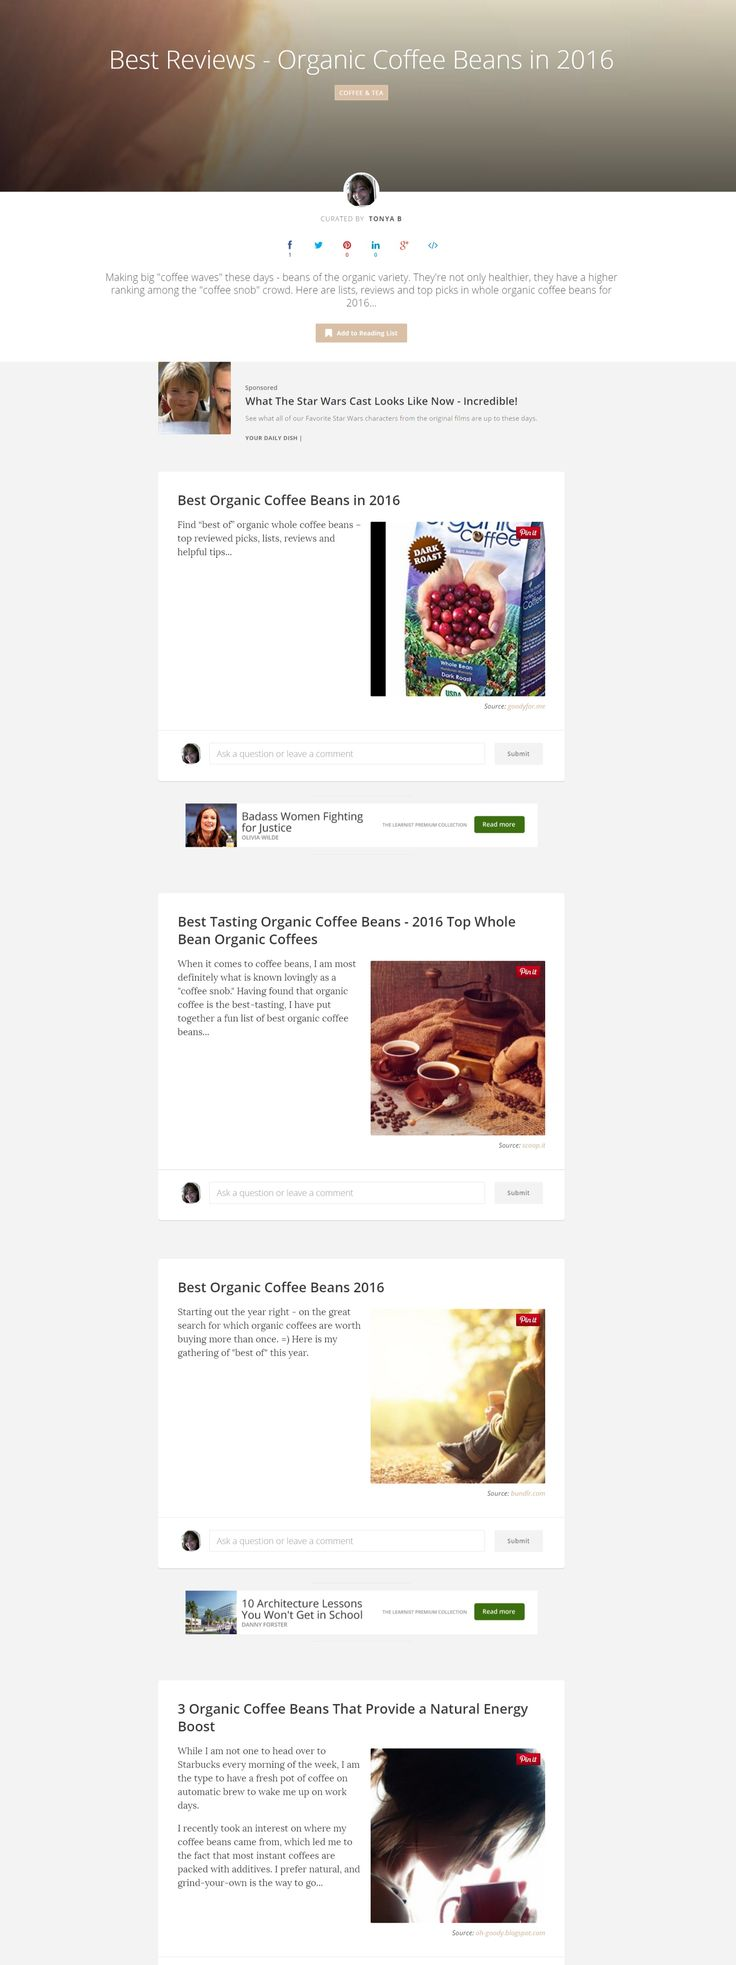 Best Reviews - Organic Coffee Beans in 2016 @ Learnist